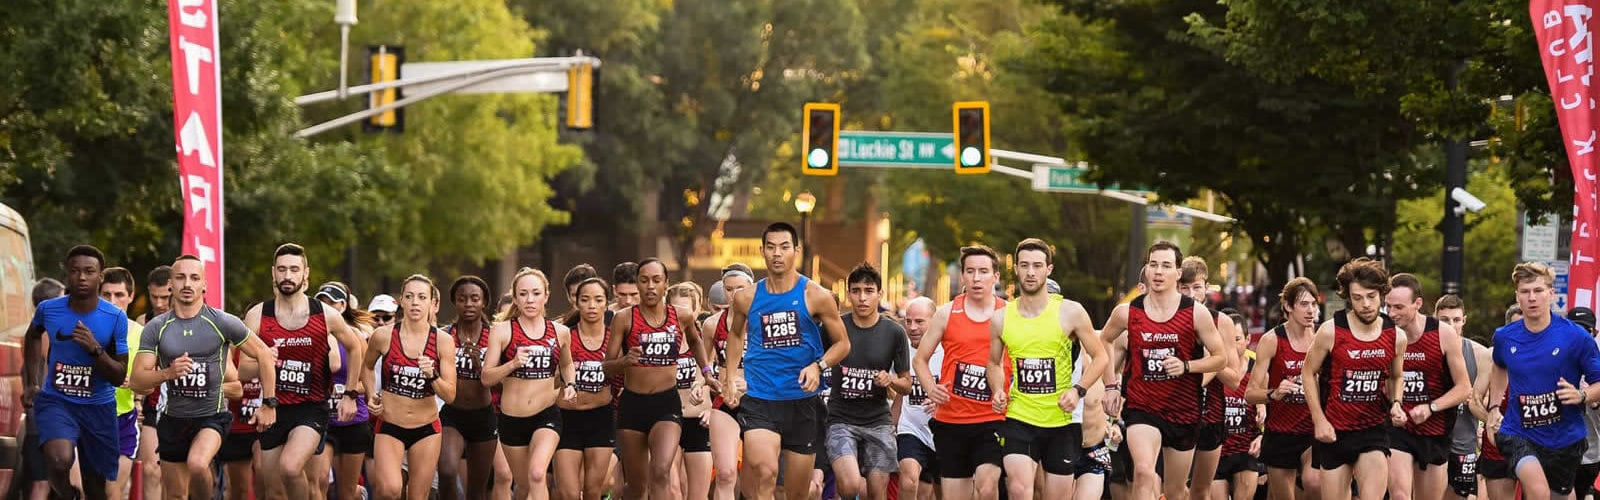 peachtree-road-race-course-sport-4-juillet-independance-etats-unis-tradition-une